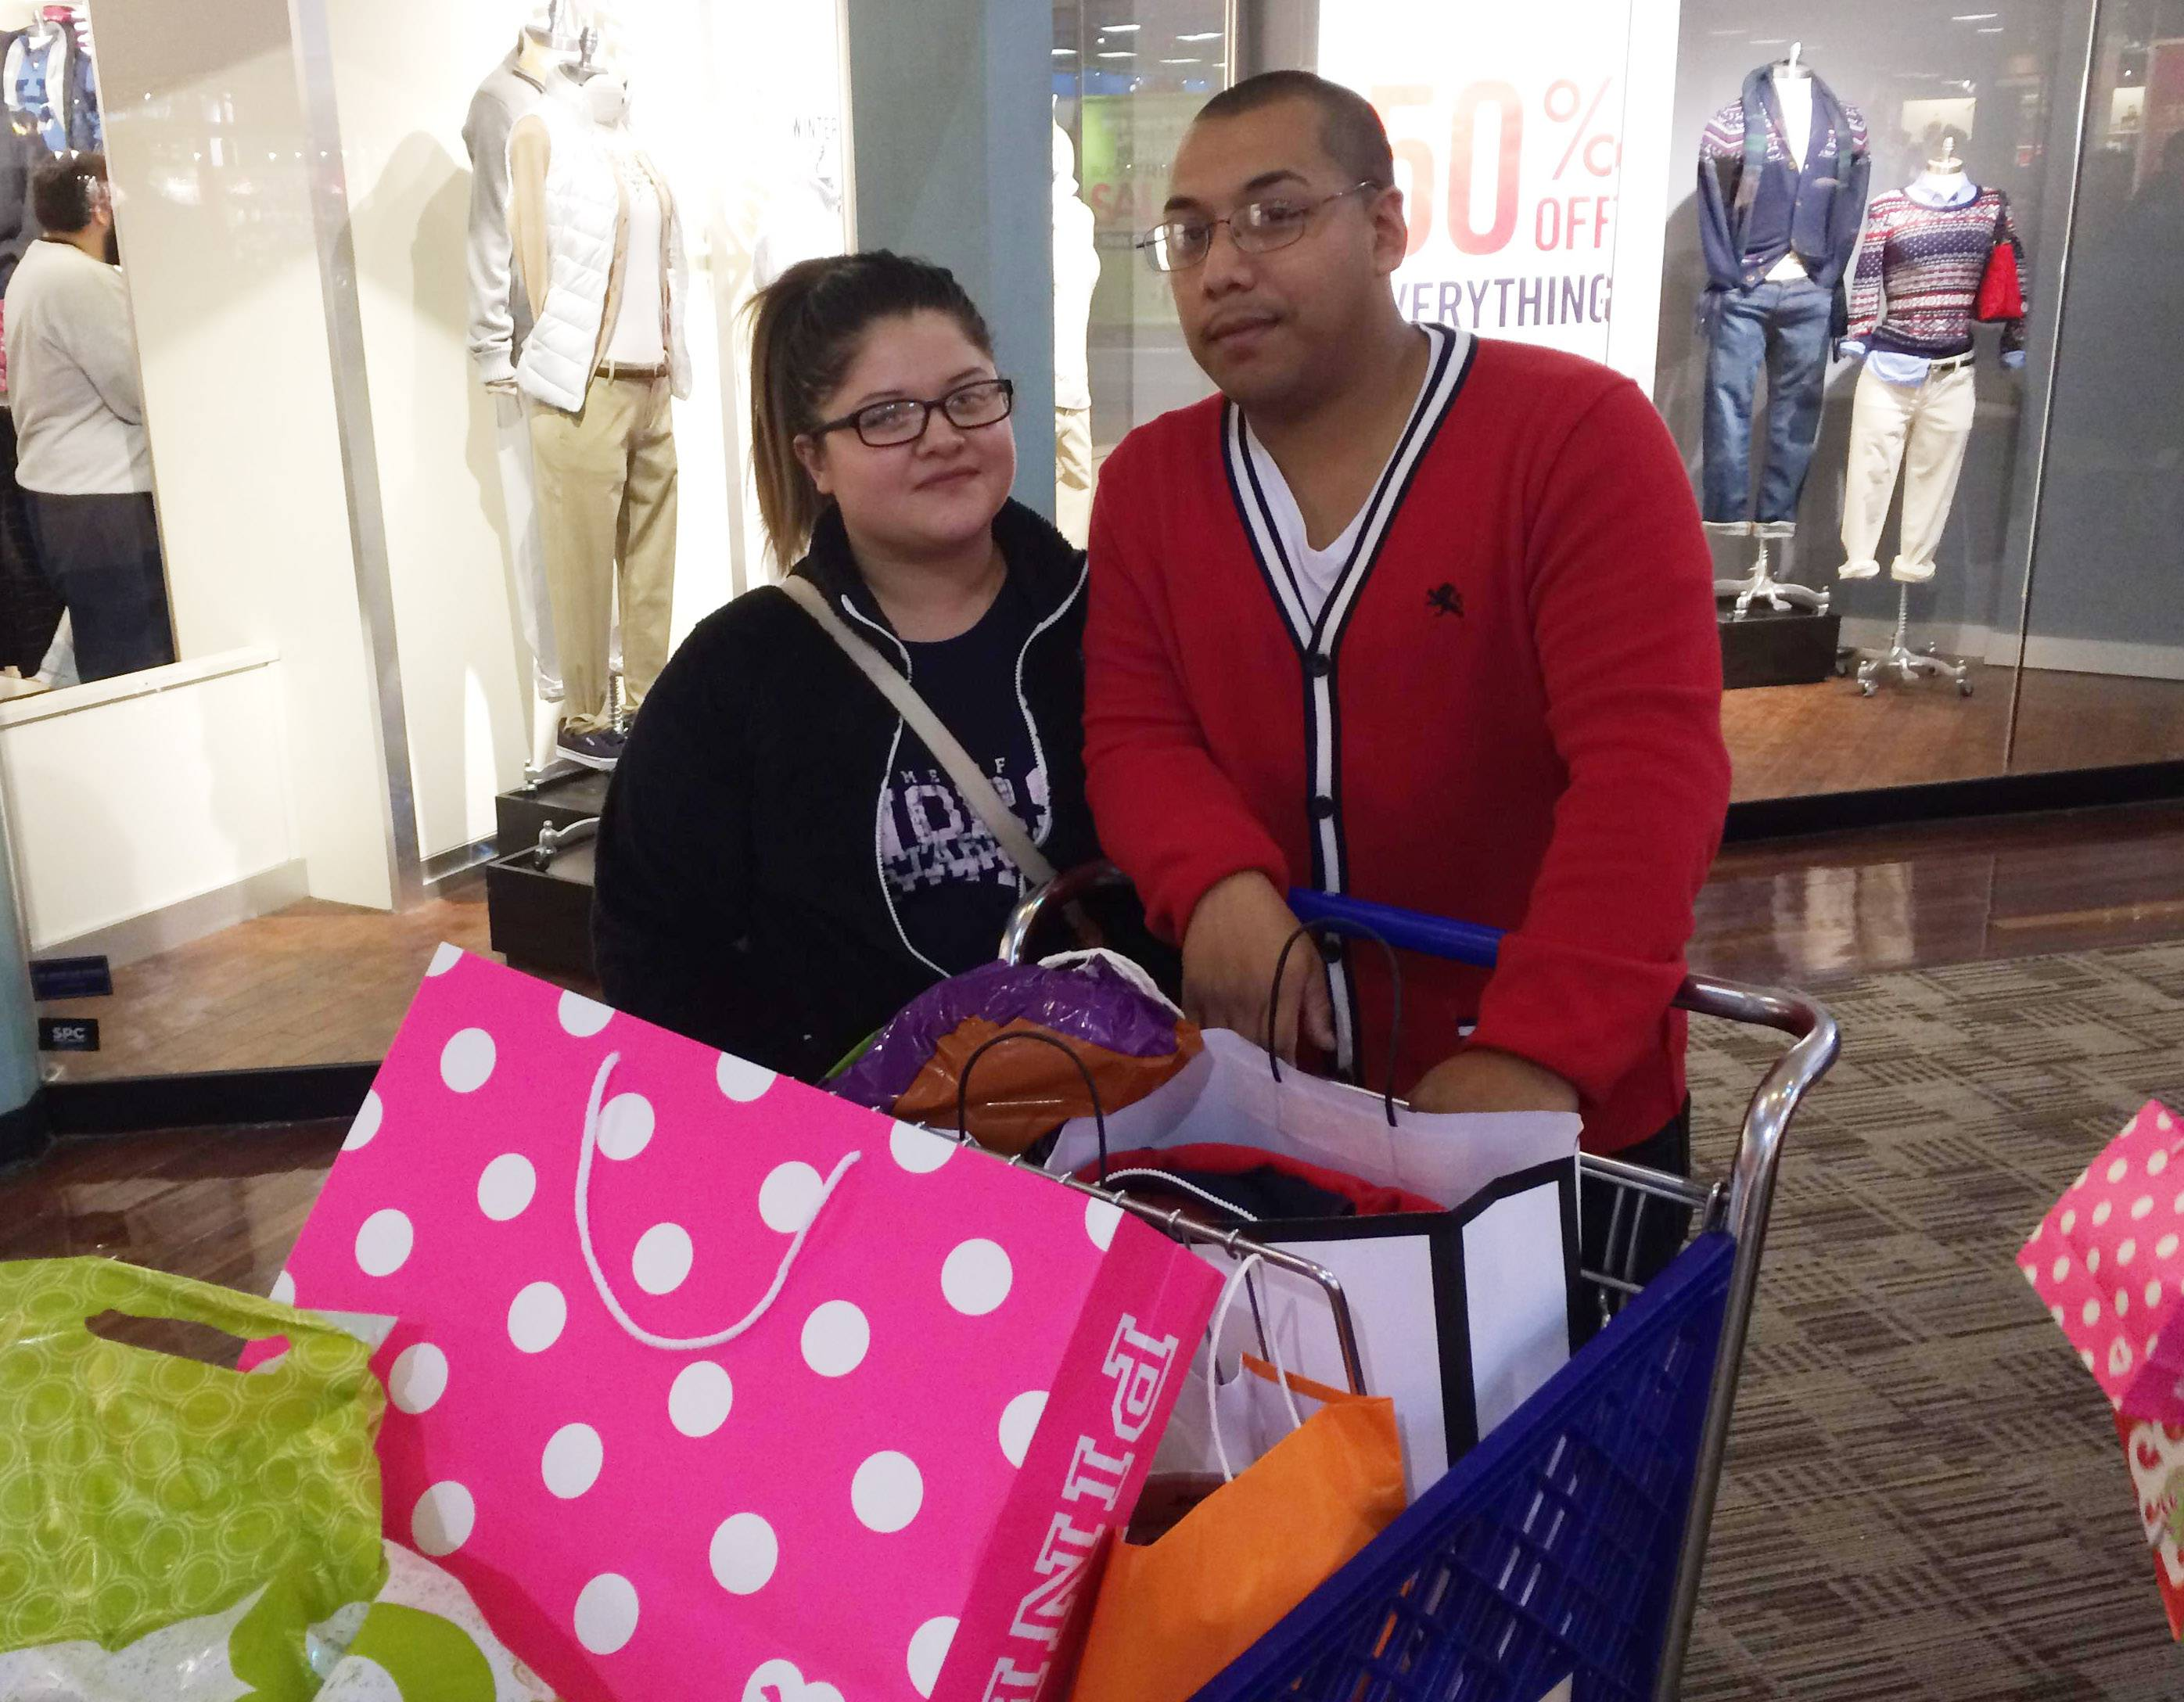 Andy Gomez of Gurnee said his trip to Gurnee Mills on Black Friday wasn't primarily to purchase gifts for the holidays.